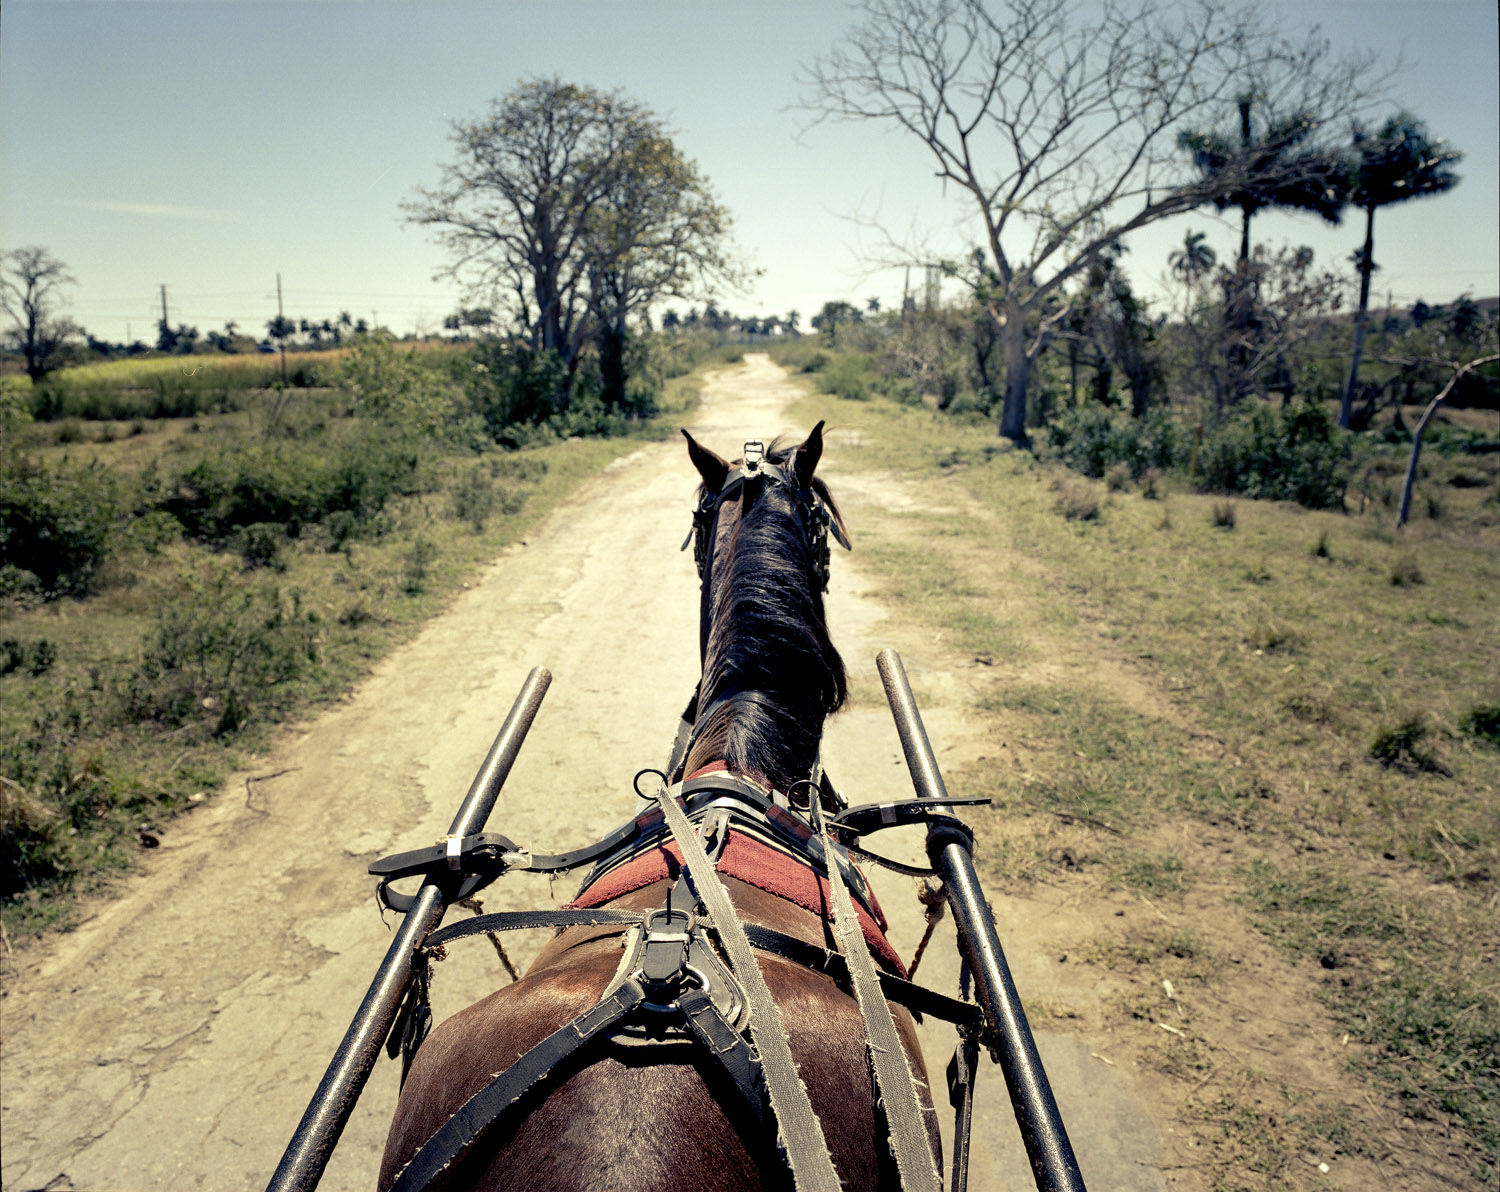 Riding on horse drawn carriages is still the main way to move in the Cuban countryside.